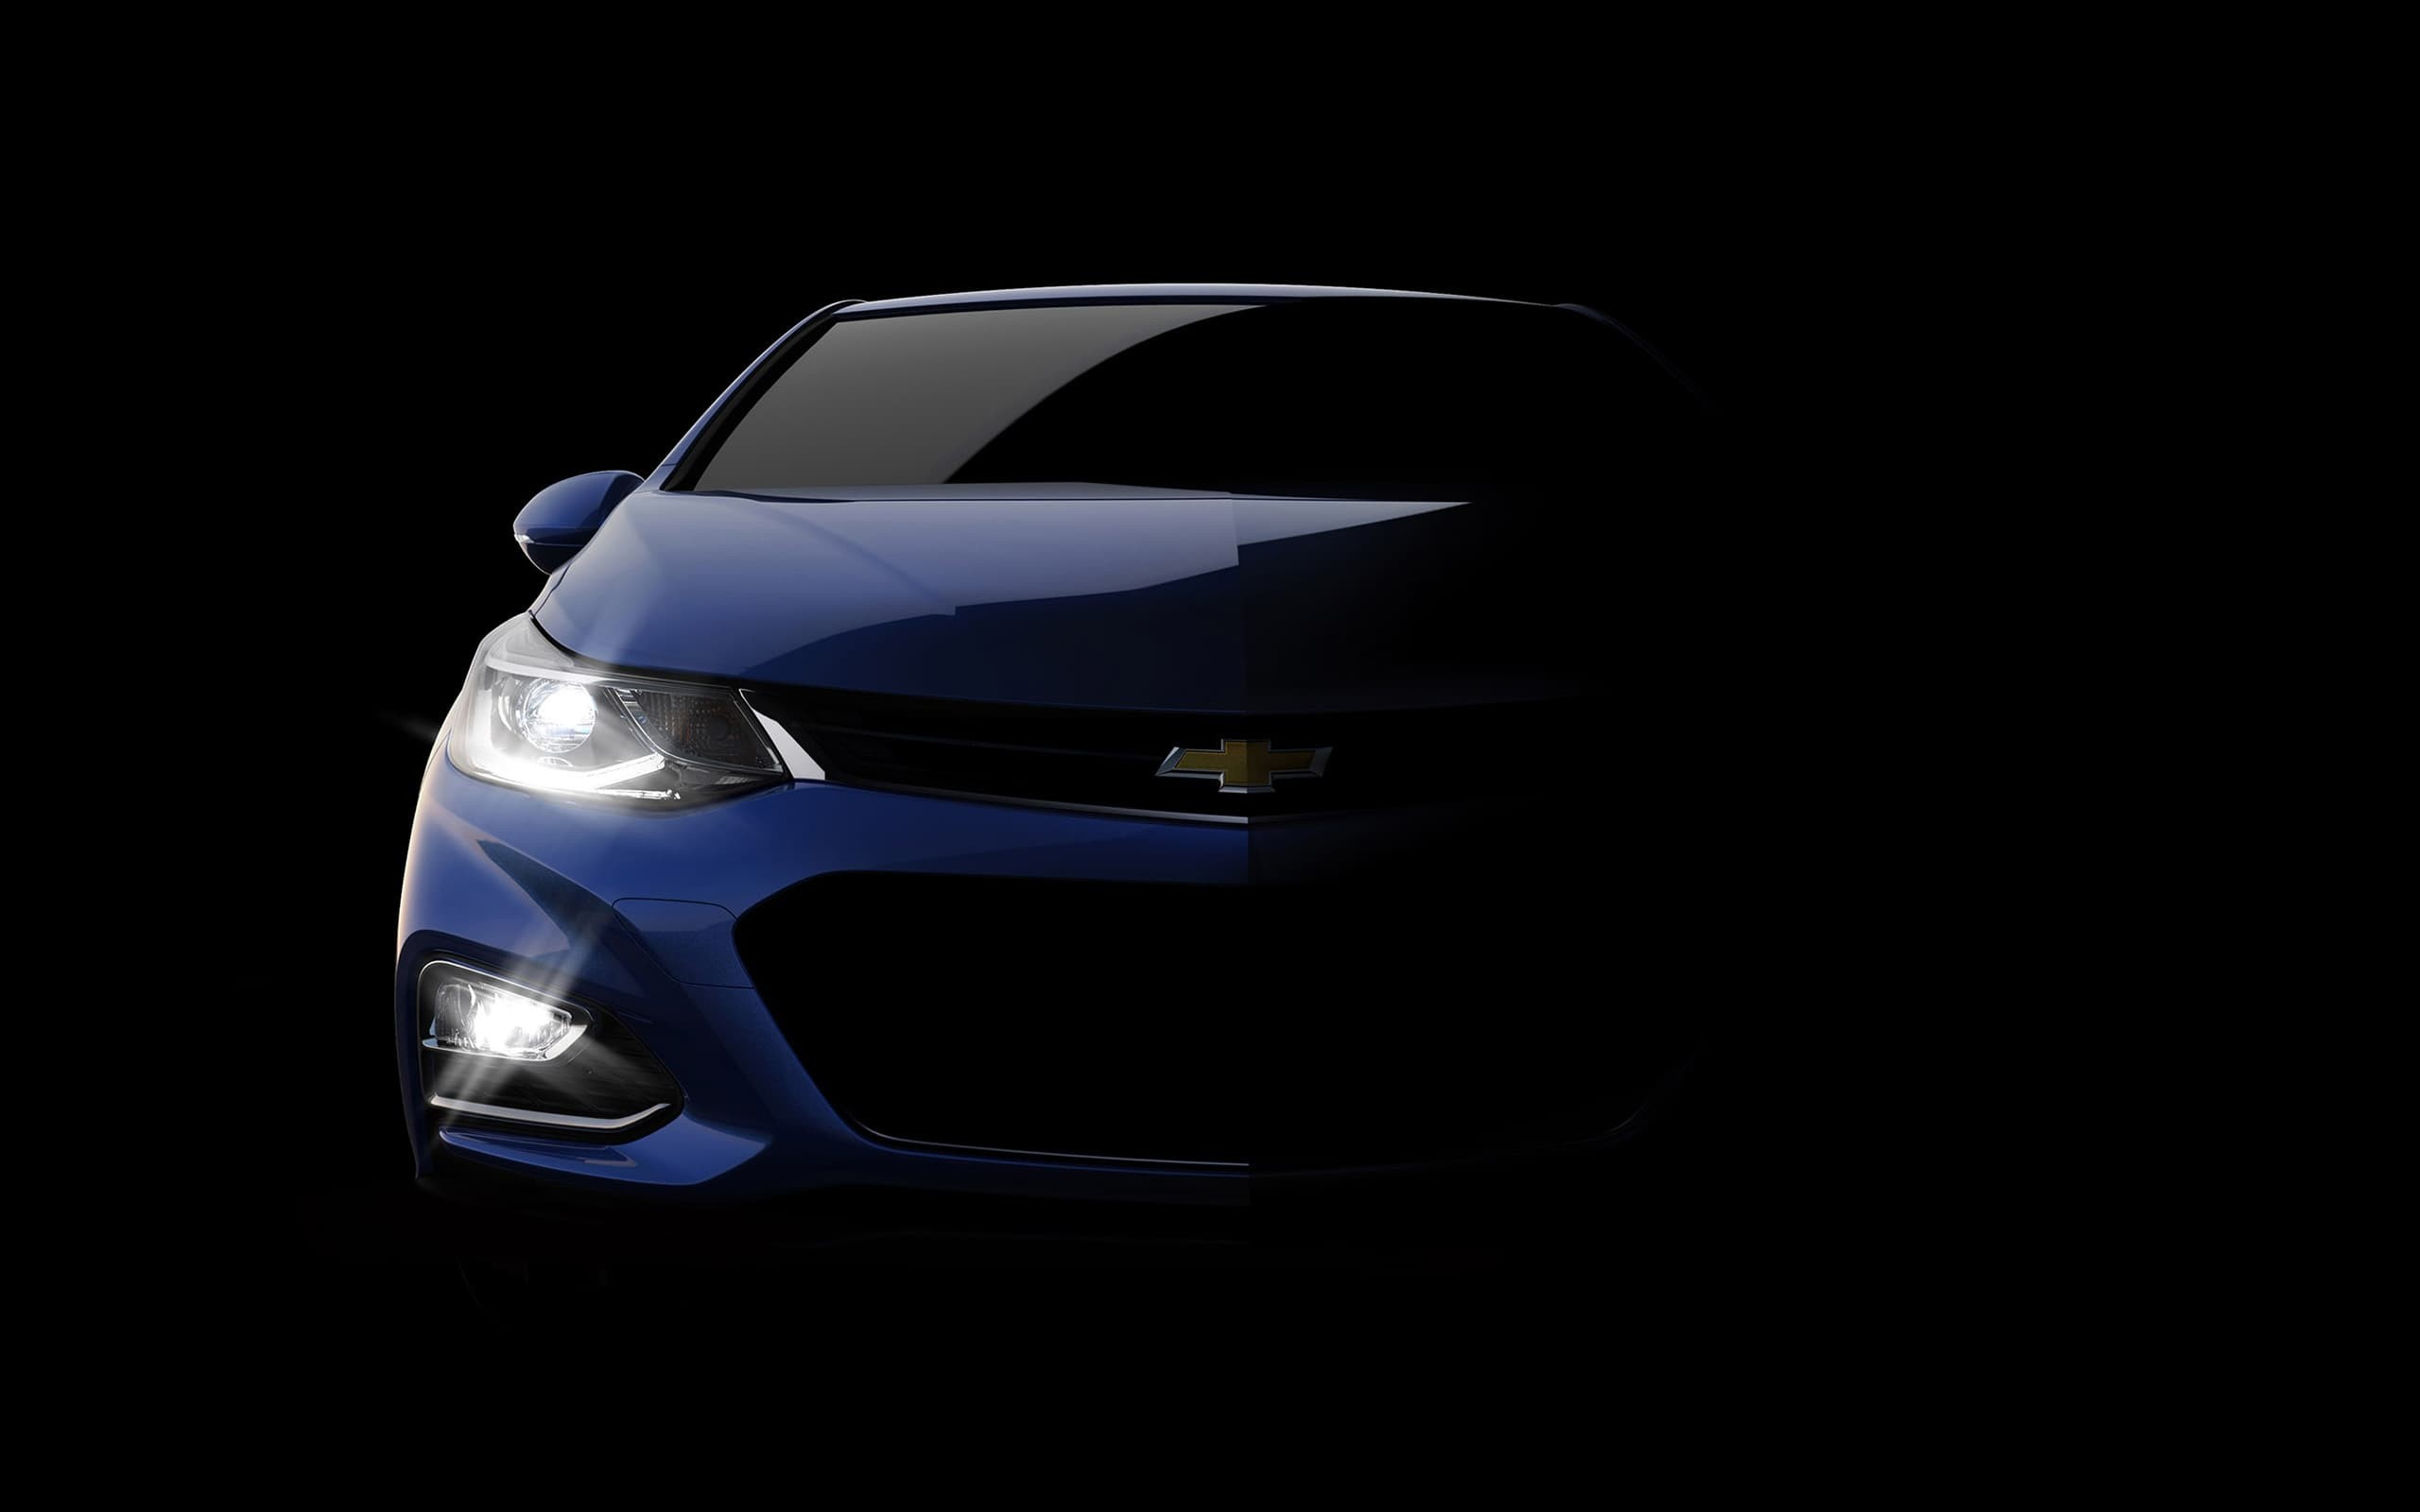 Iphone 6 Hd Car Wallpaper 1080p Chevy Logo Wallpaper Hd 60 Images